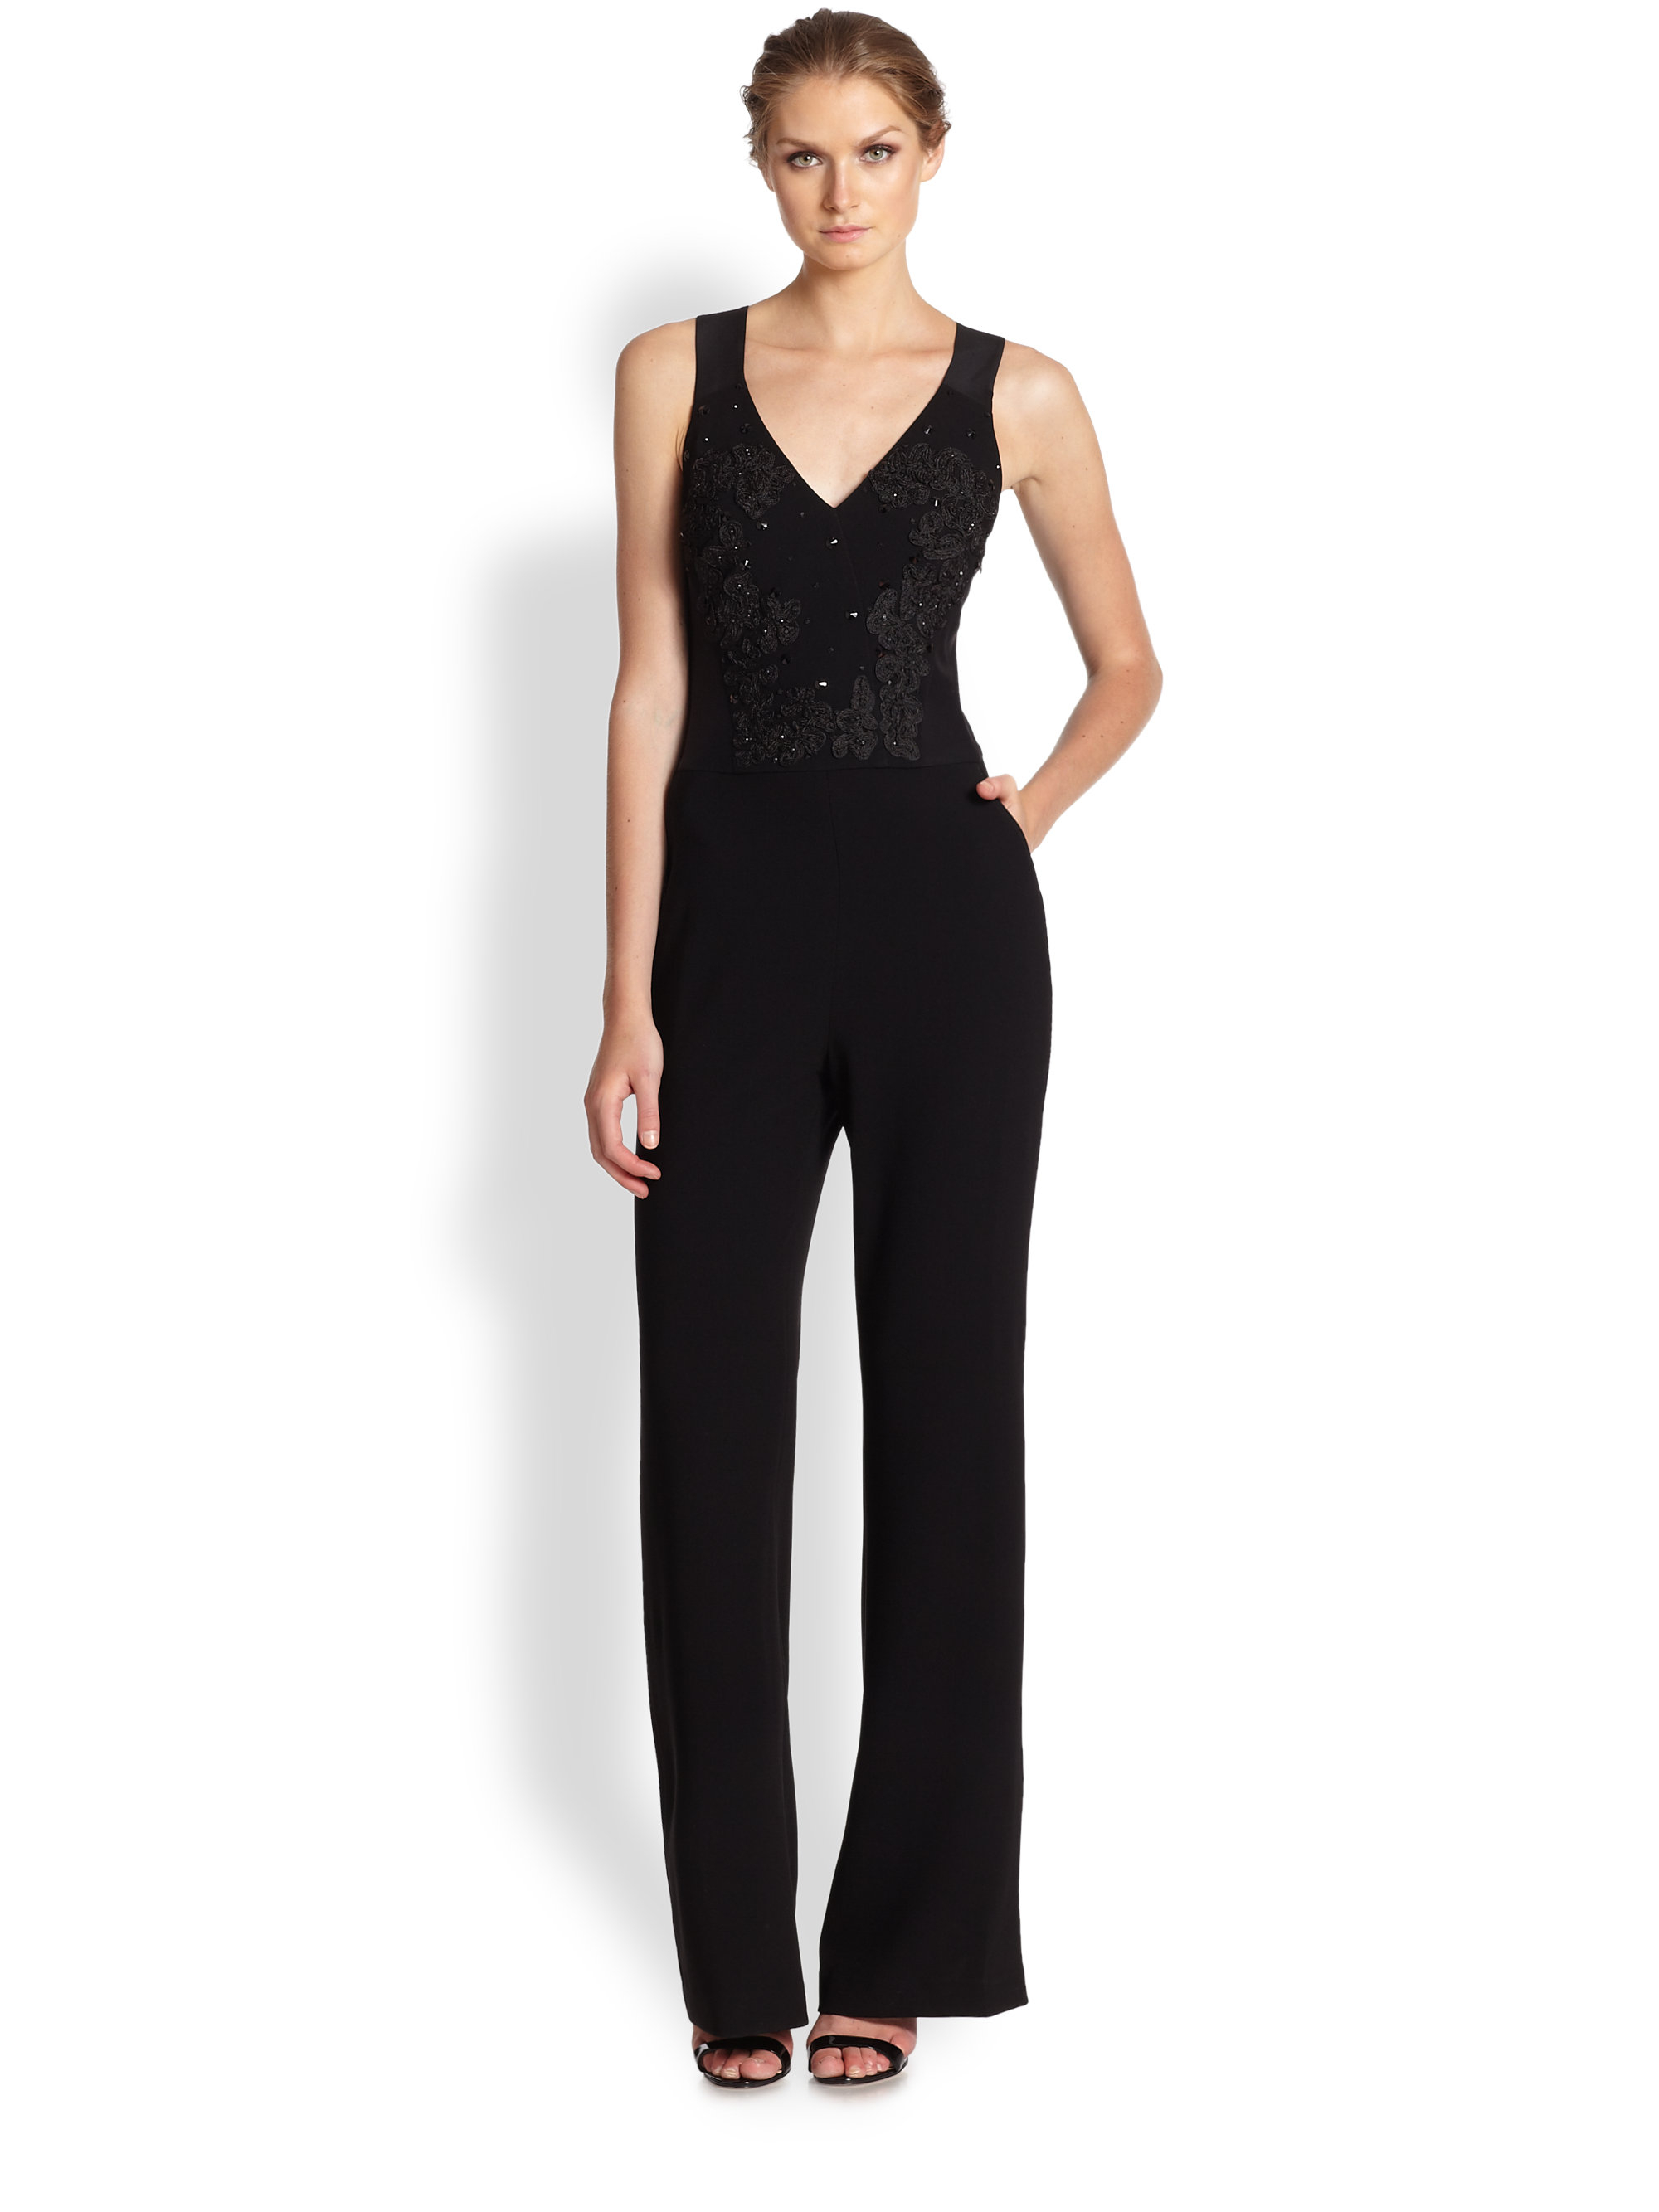 Find black v neck jumpsuit at ShopStyle. Shop the latest collection of black v neck jumpsuit from the most popular stores - all in one place.